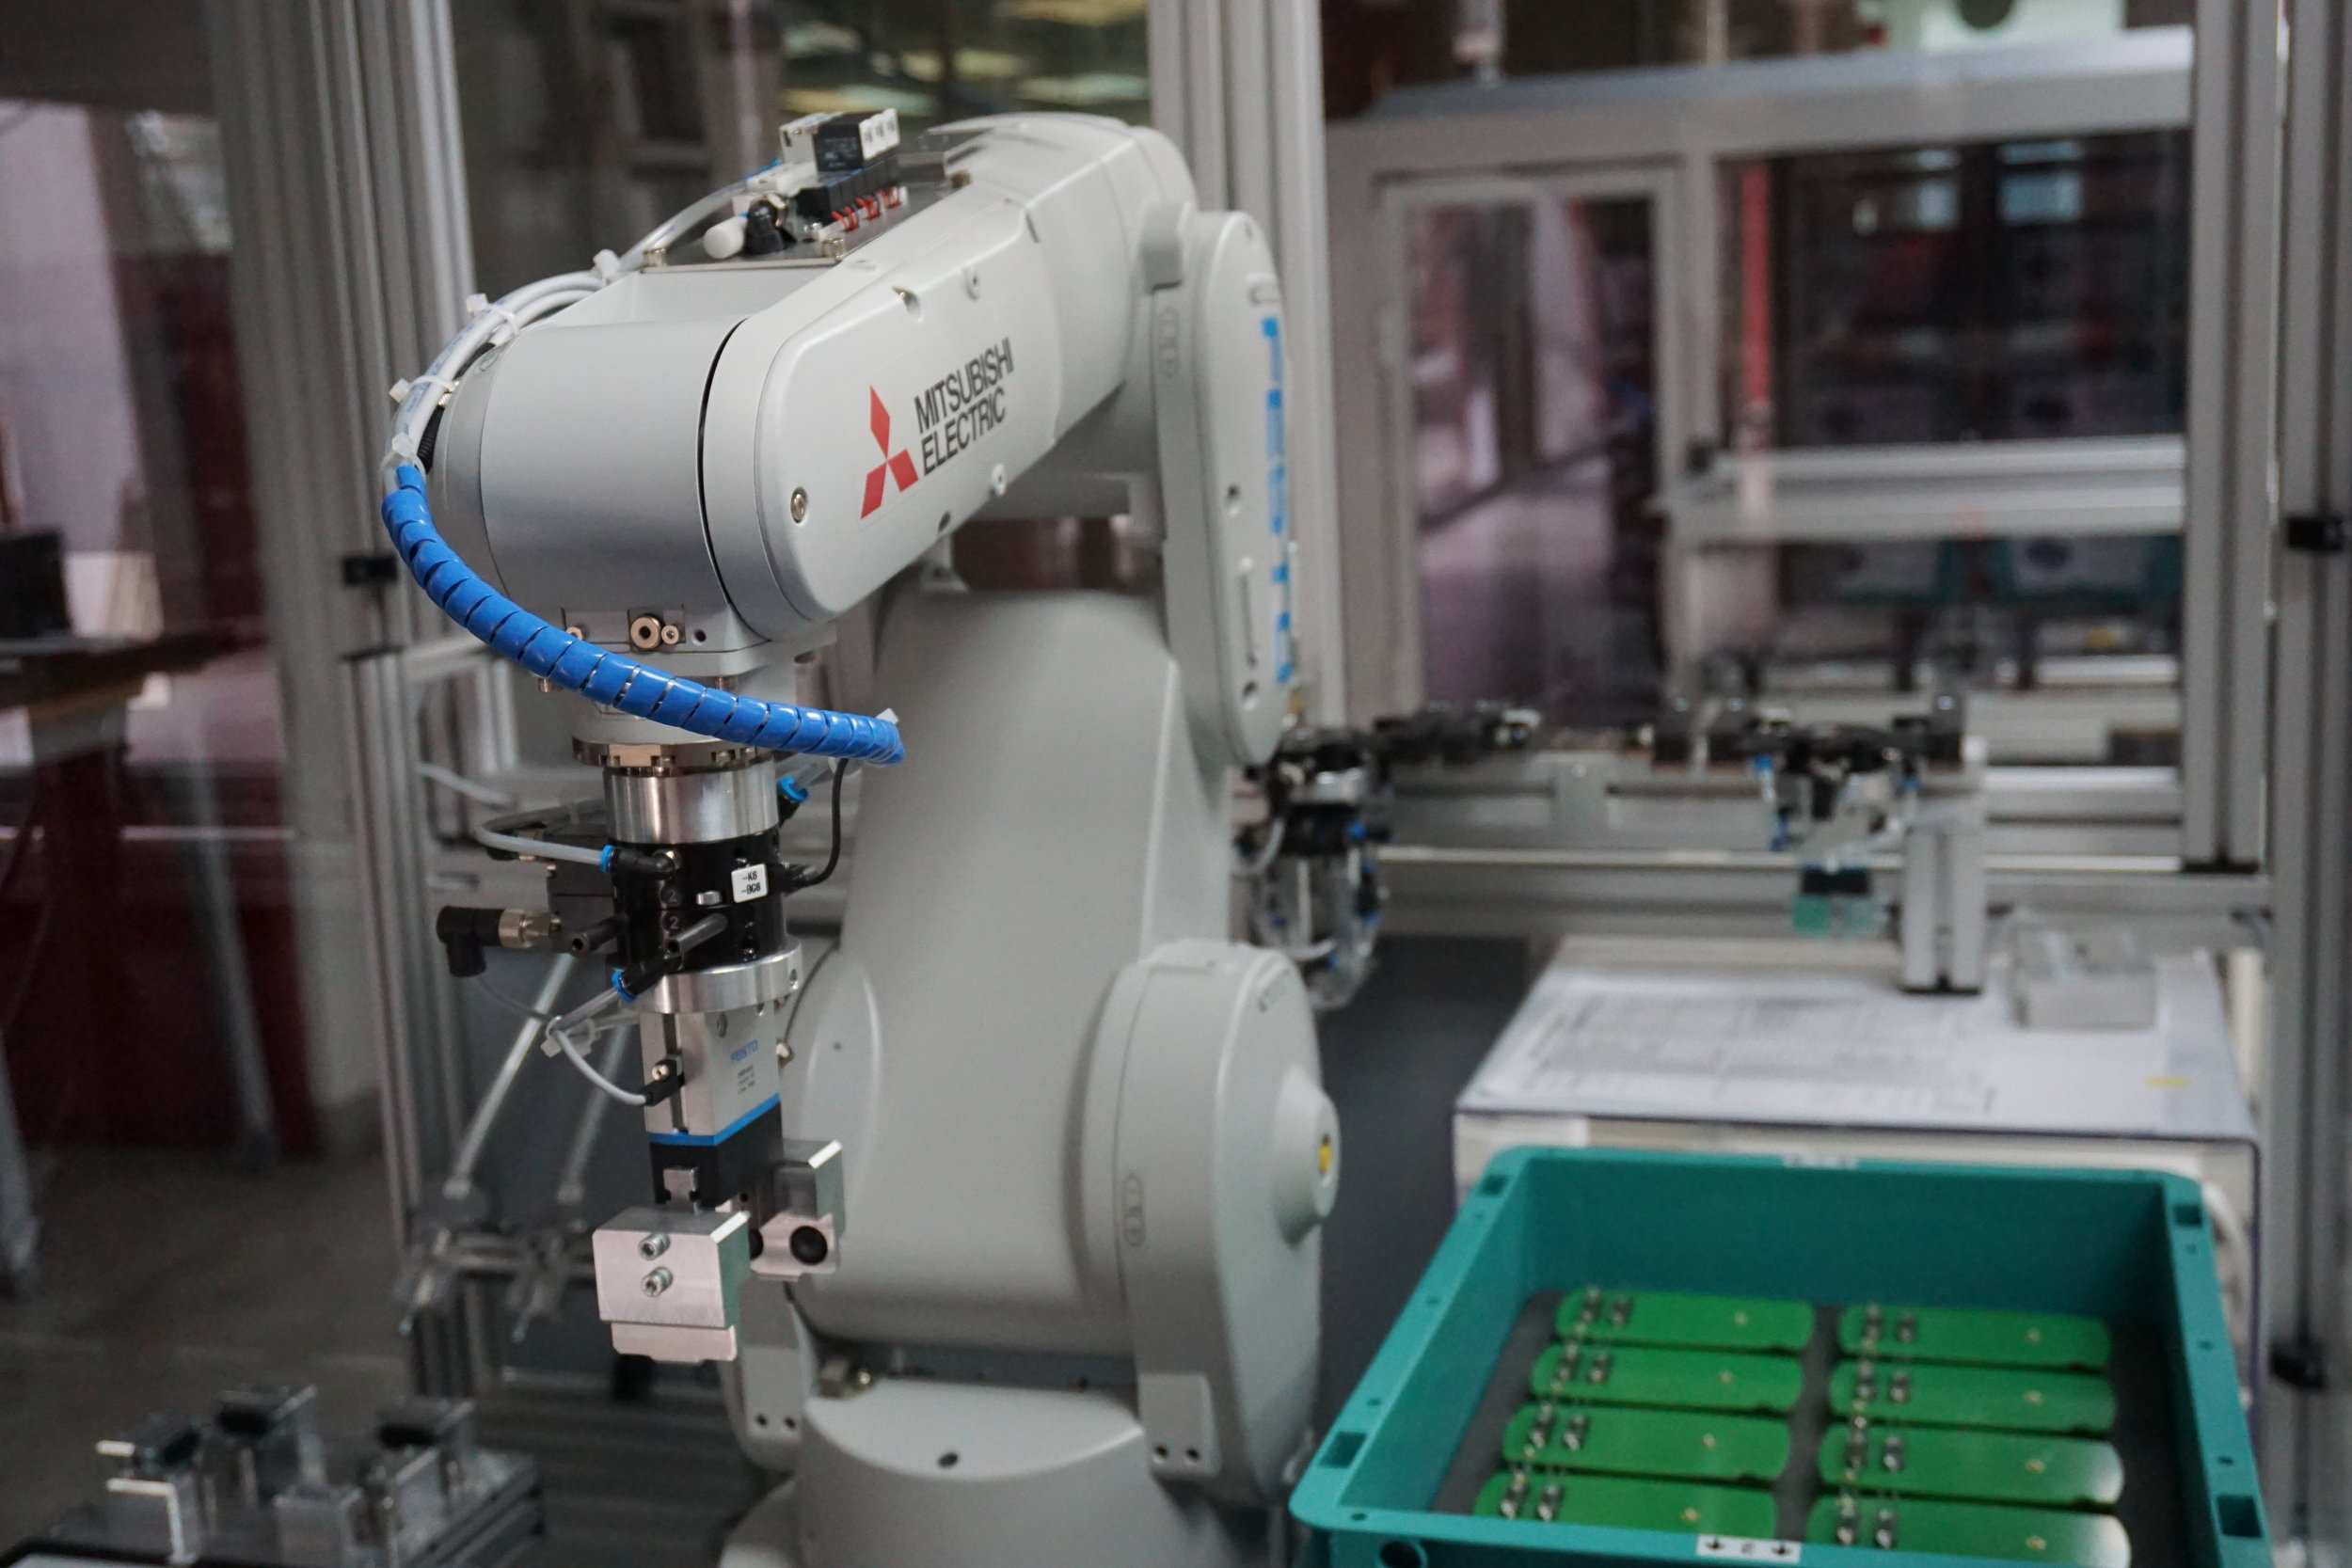 Robots such as this one are used in manufacturing for precise work.